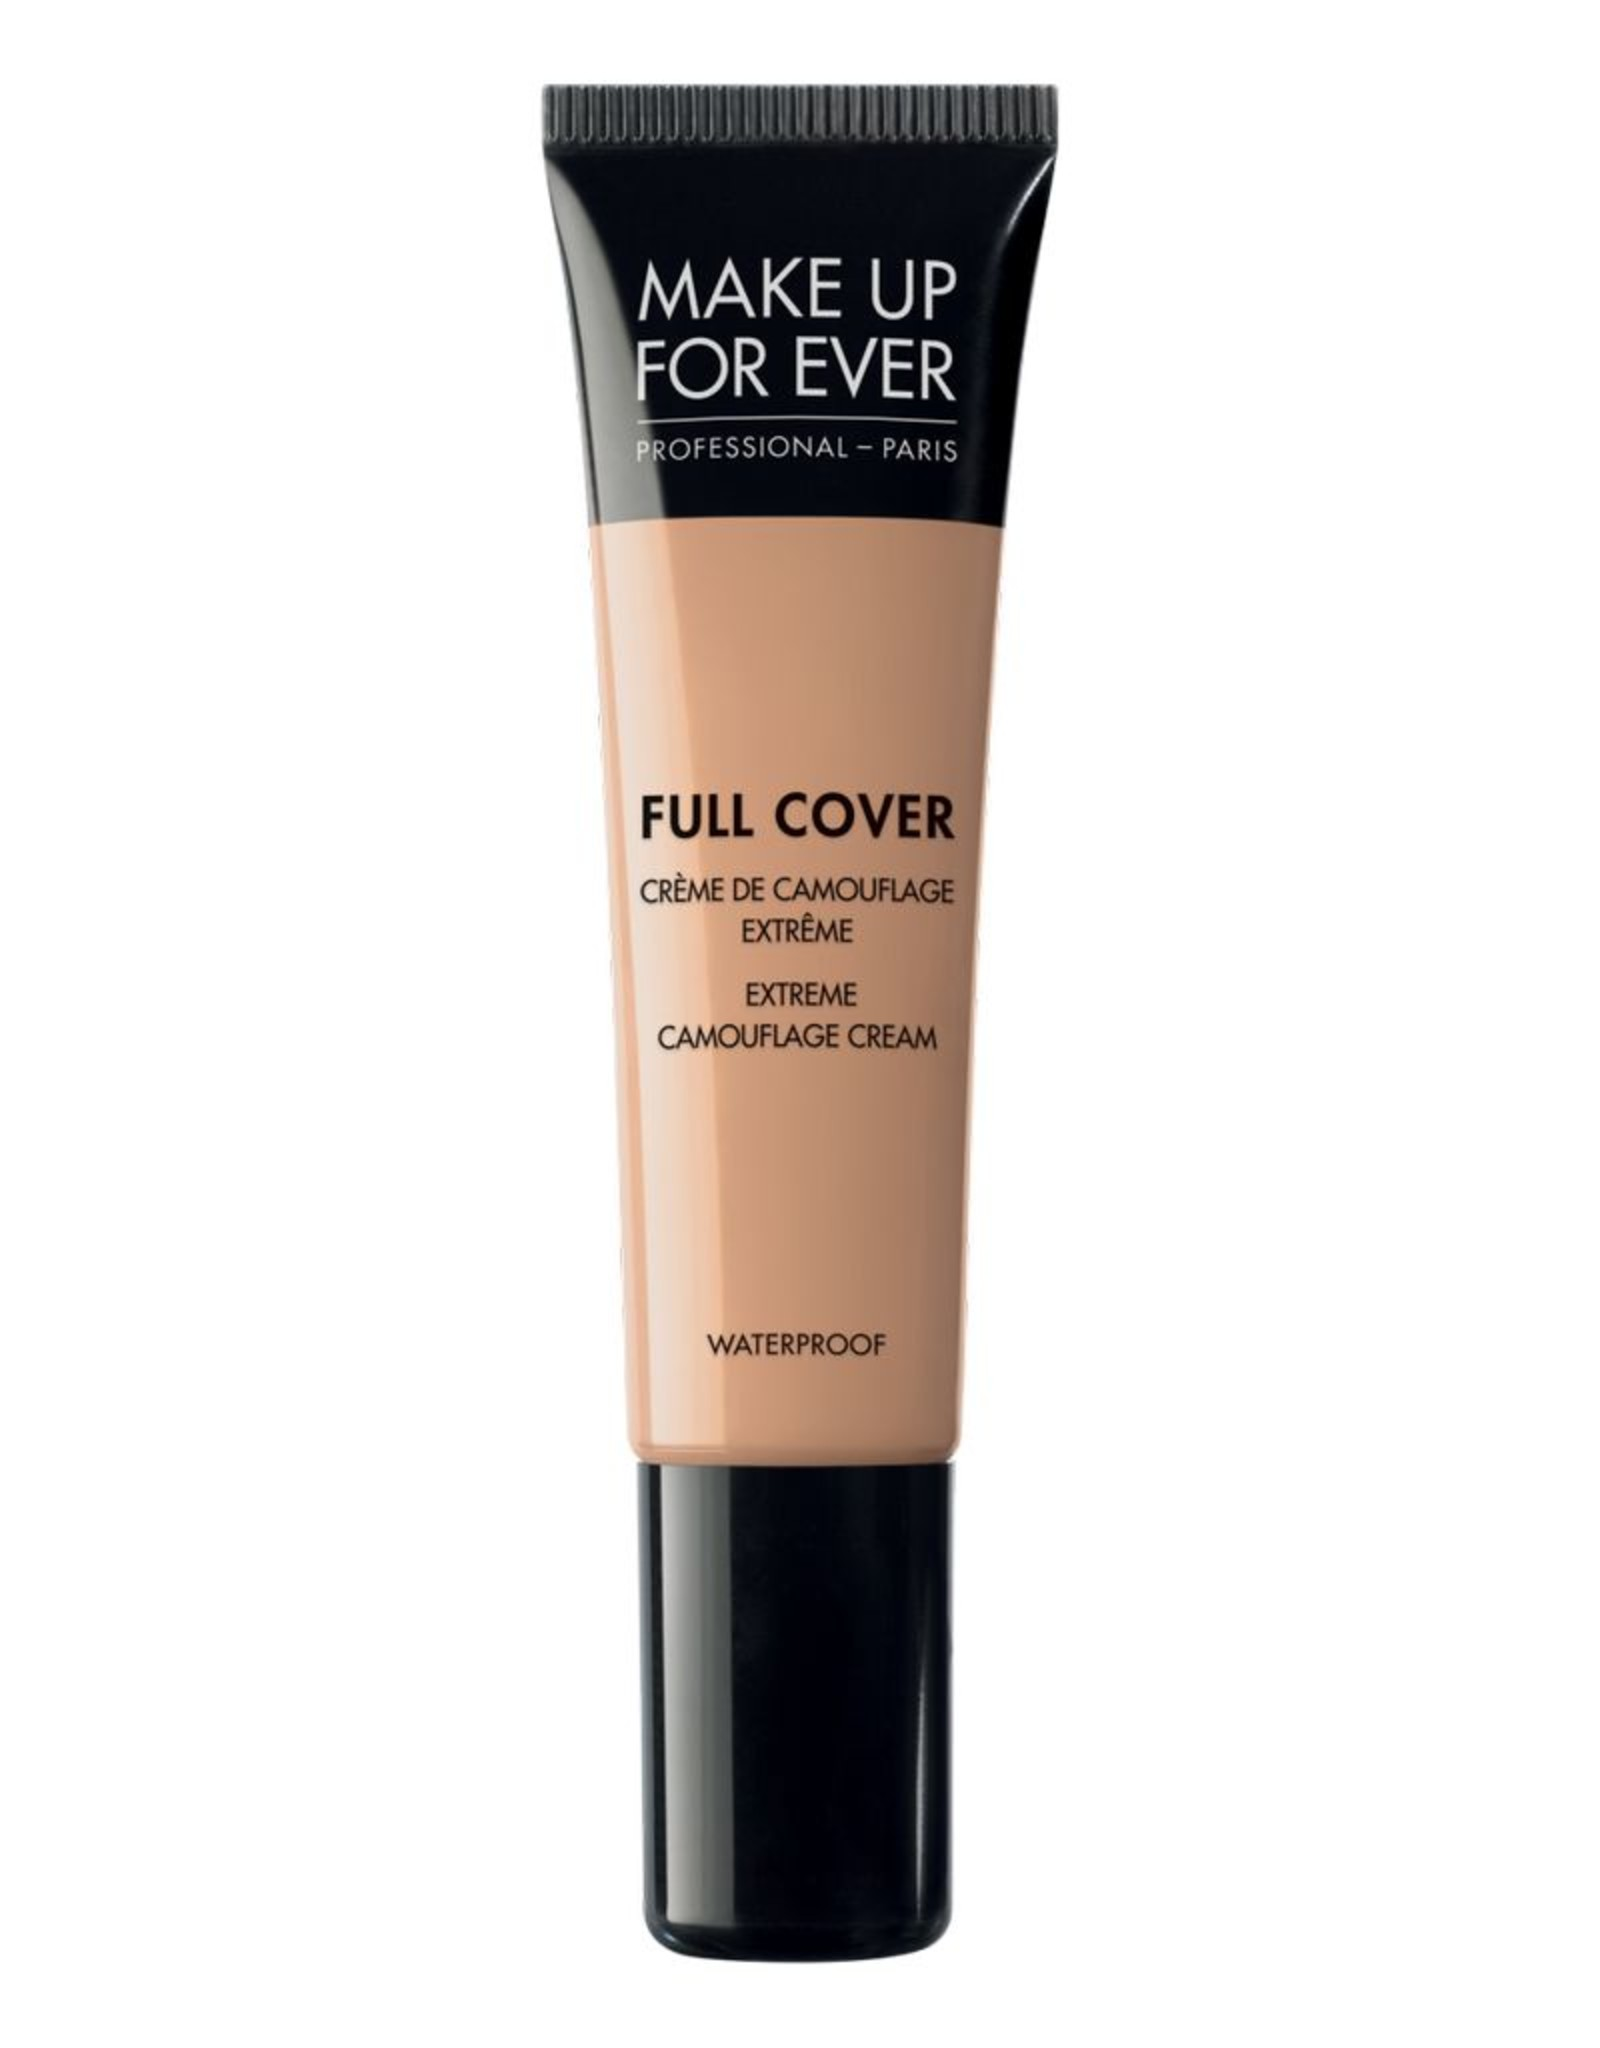 MUFE FULL COVER 15ml N7 Sable / Sand